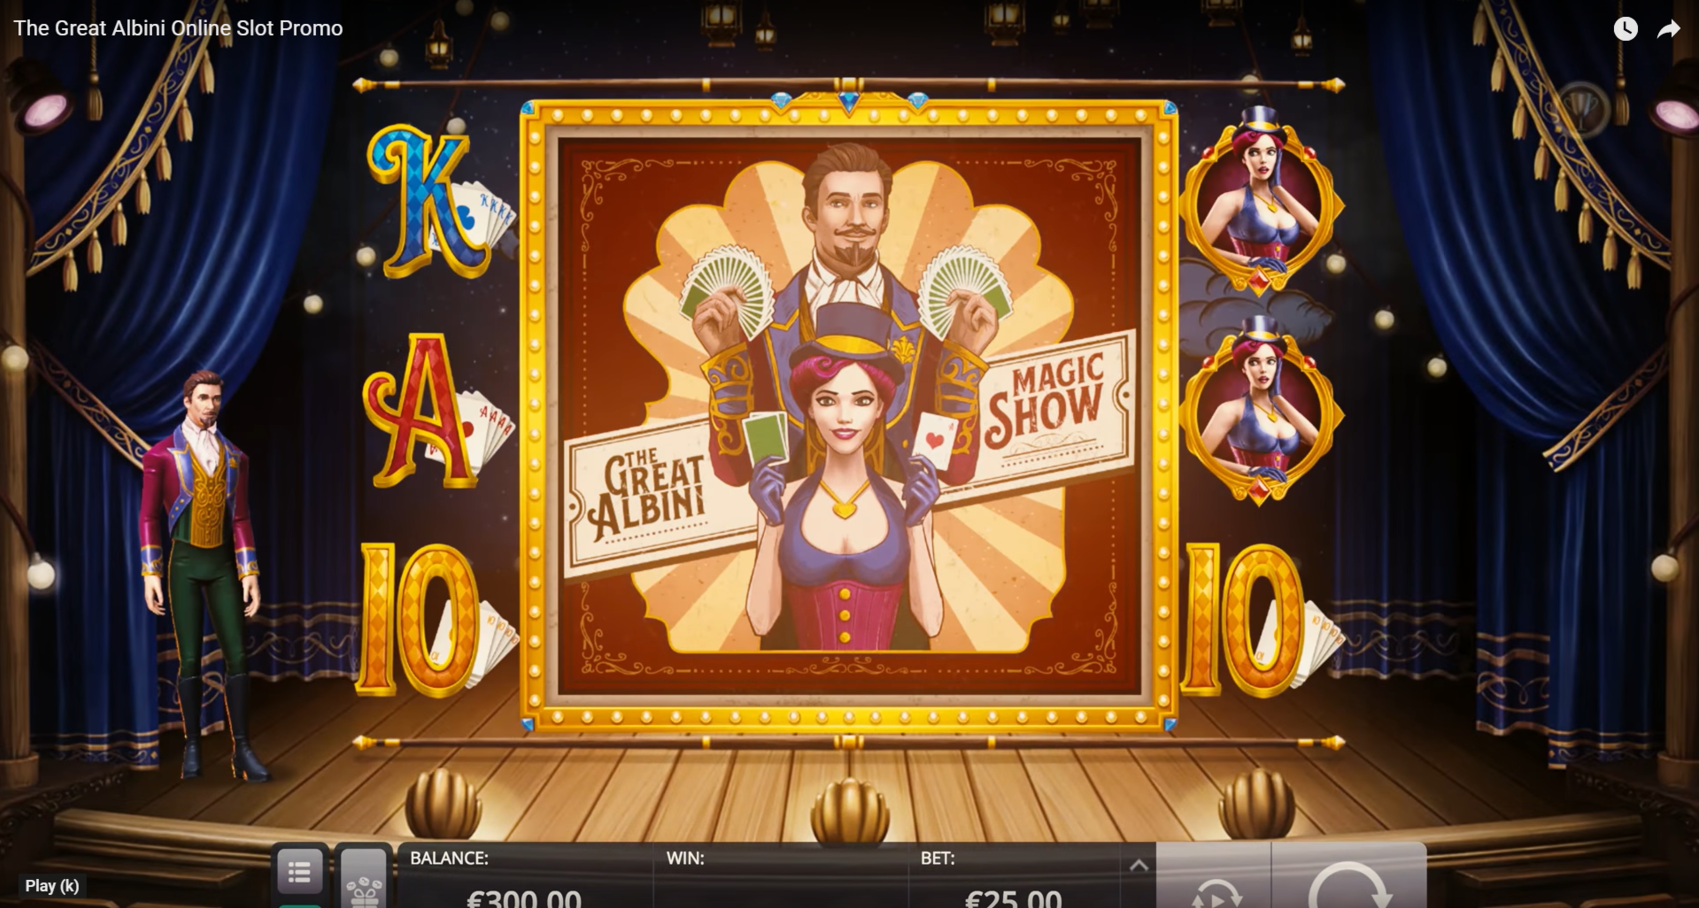 The New Great Albini Slot Makes Grand Entrance at Microgaming Casinos